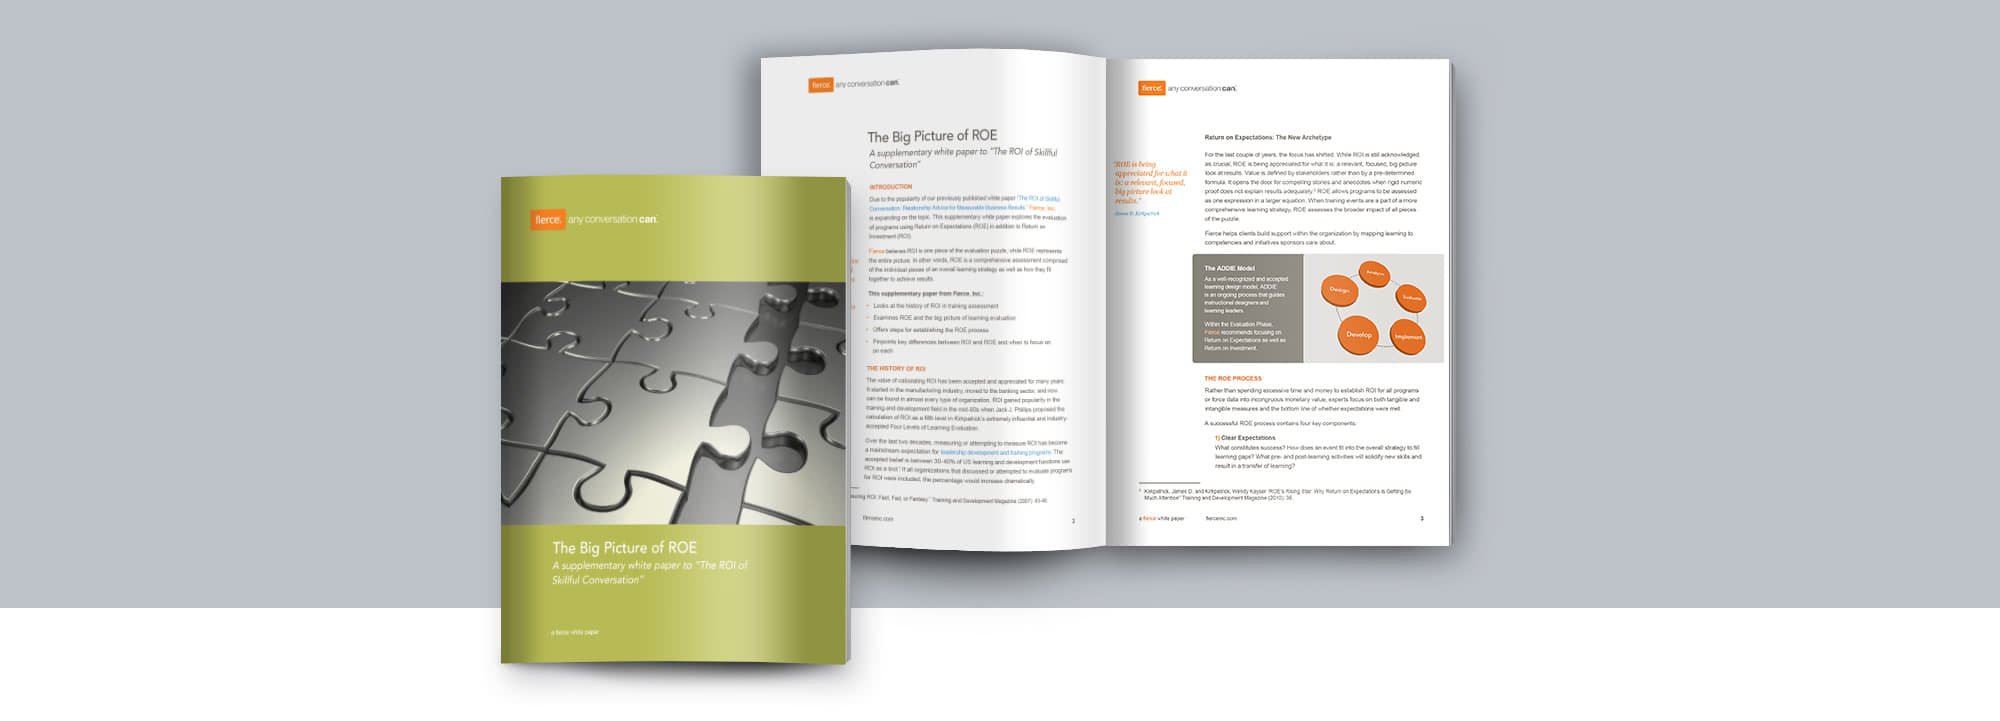 Fierce Conversations Whitepaper Big Picture of ROE ROI of Skillful Conversation